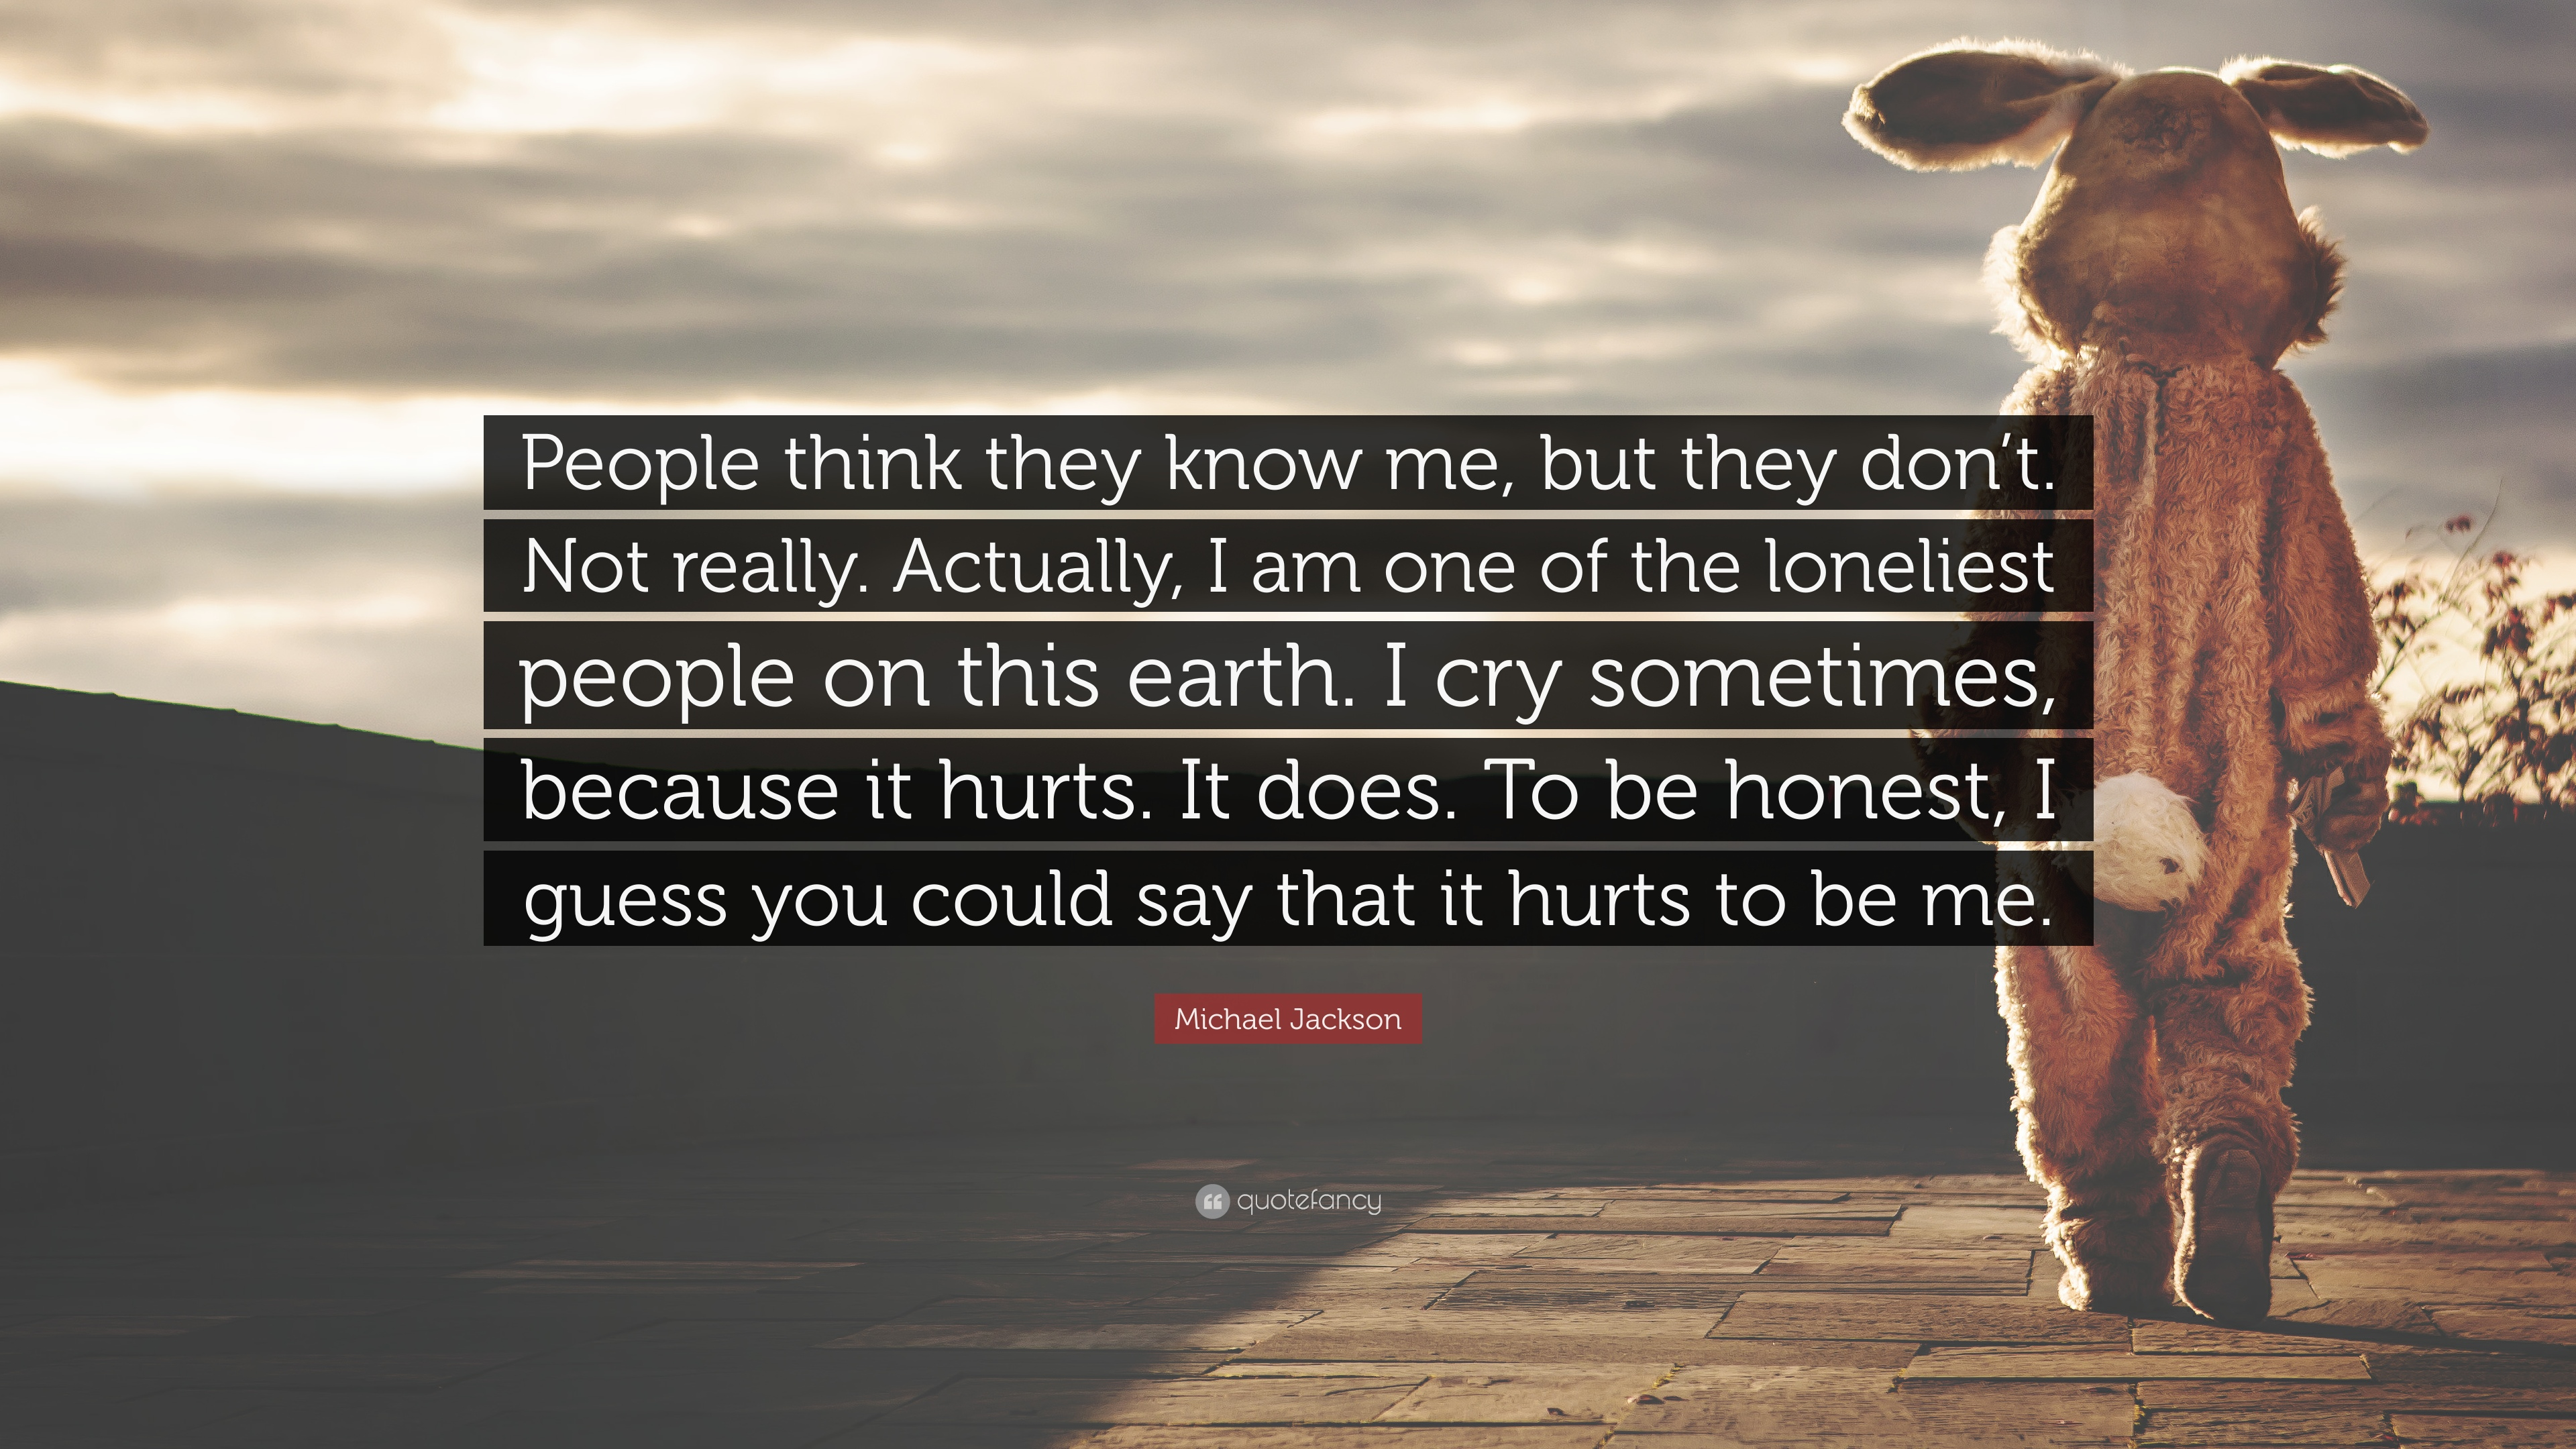 Bon Michael Jackson Quote: U201cPeople Think They Know Me, But They Donu0027t